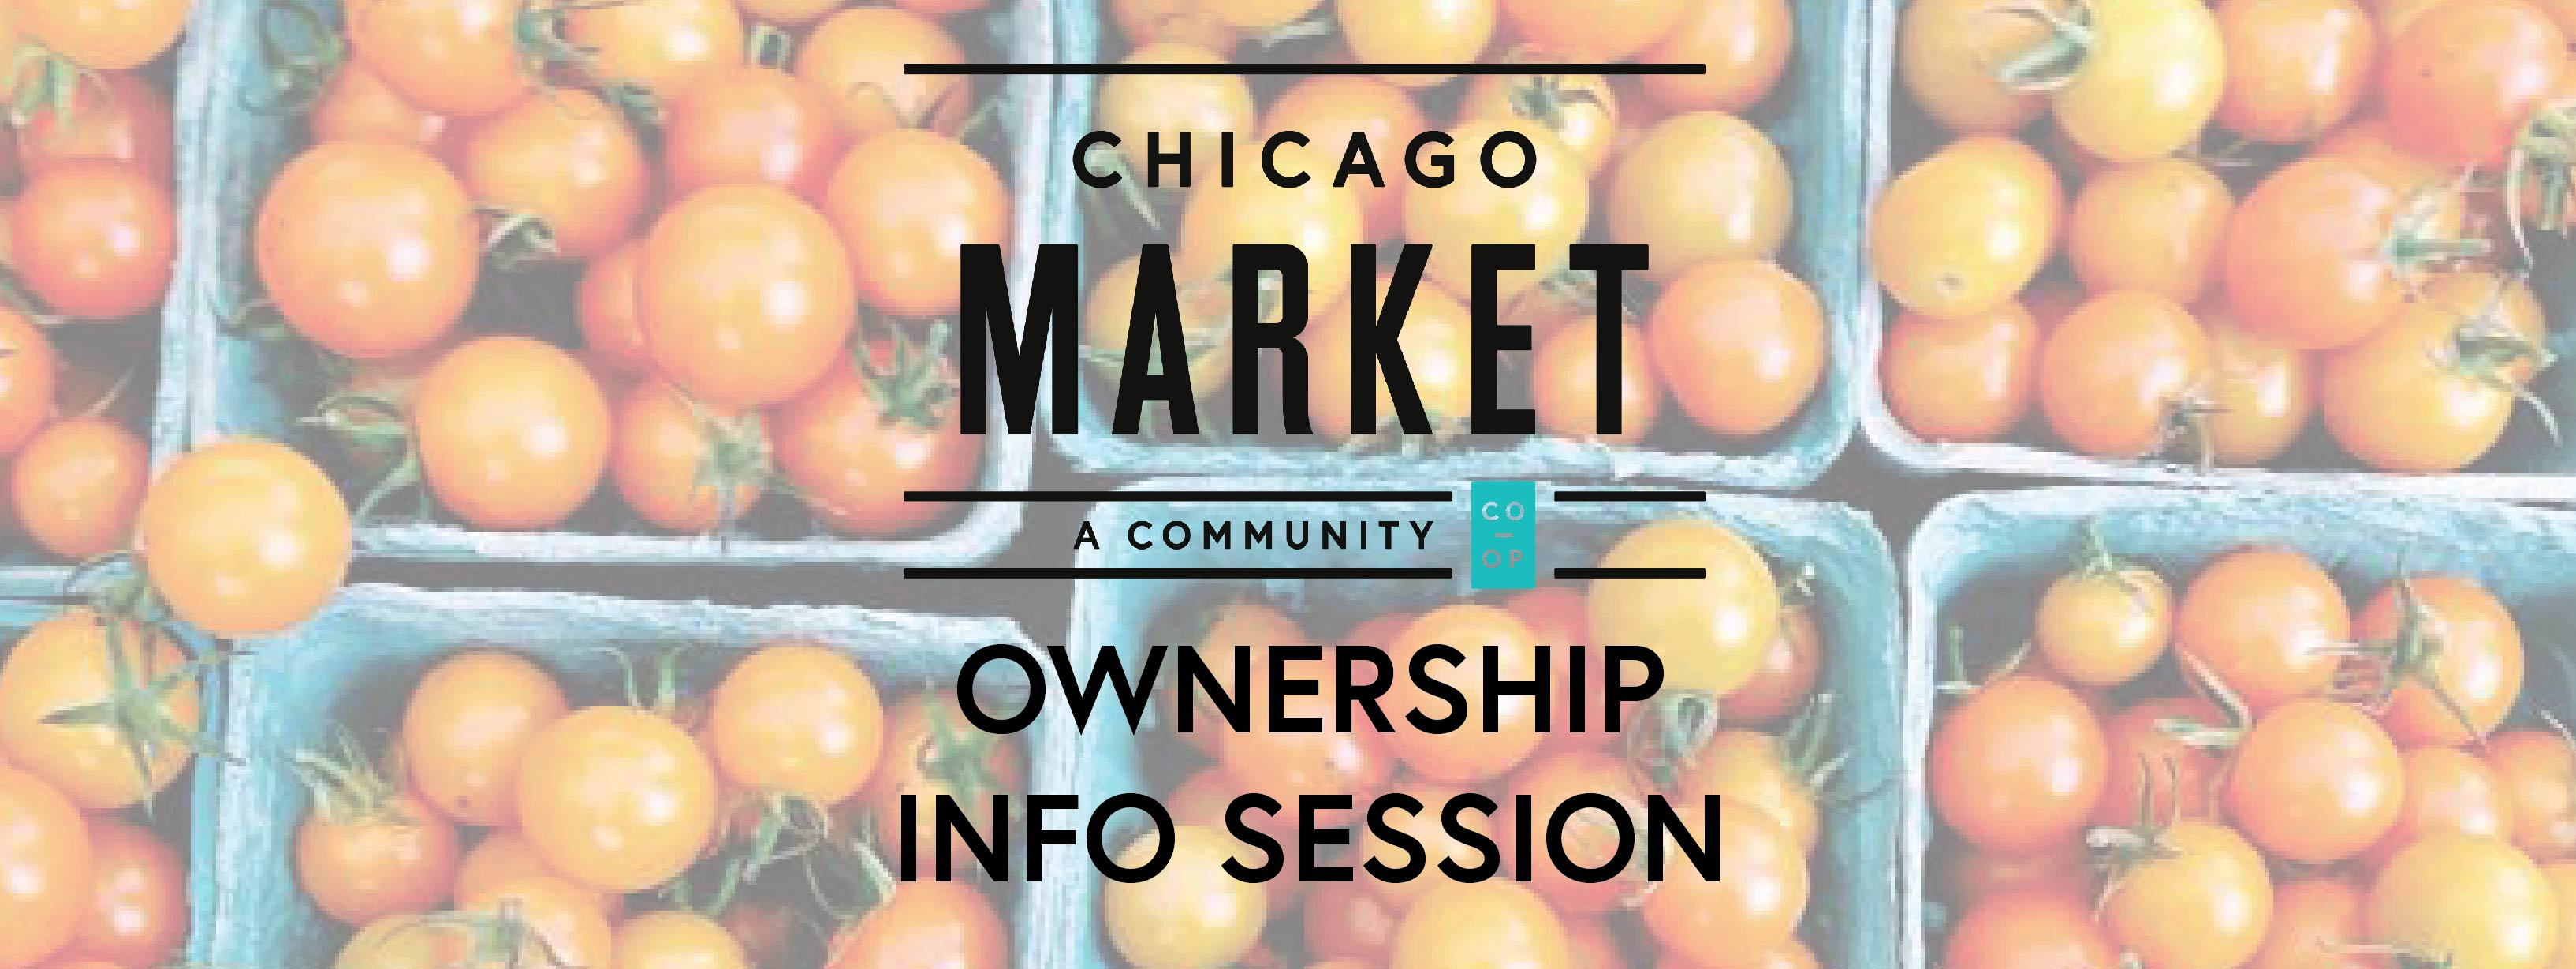 Chicago Market Info Session